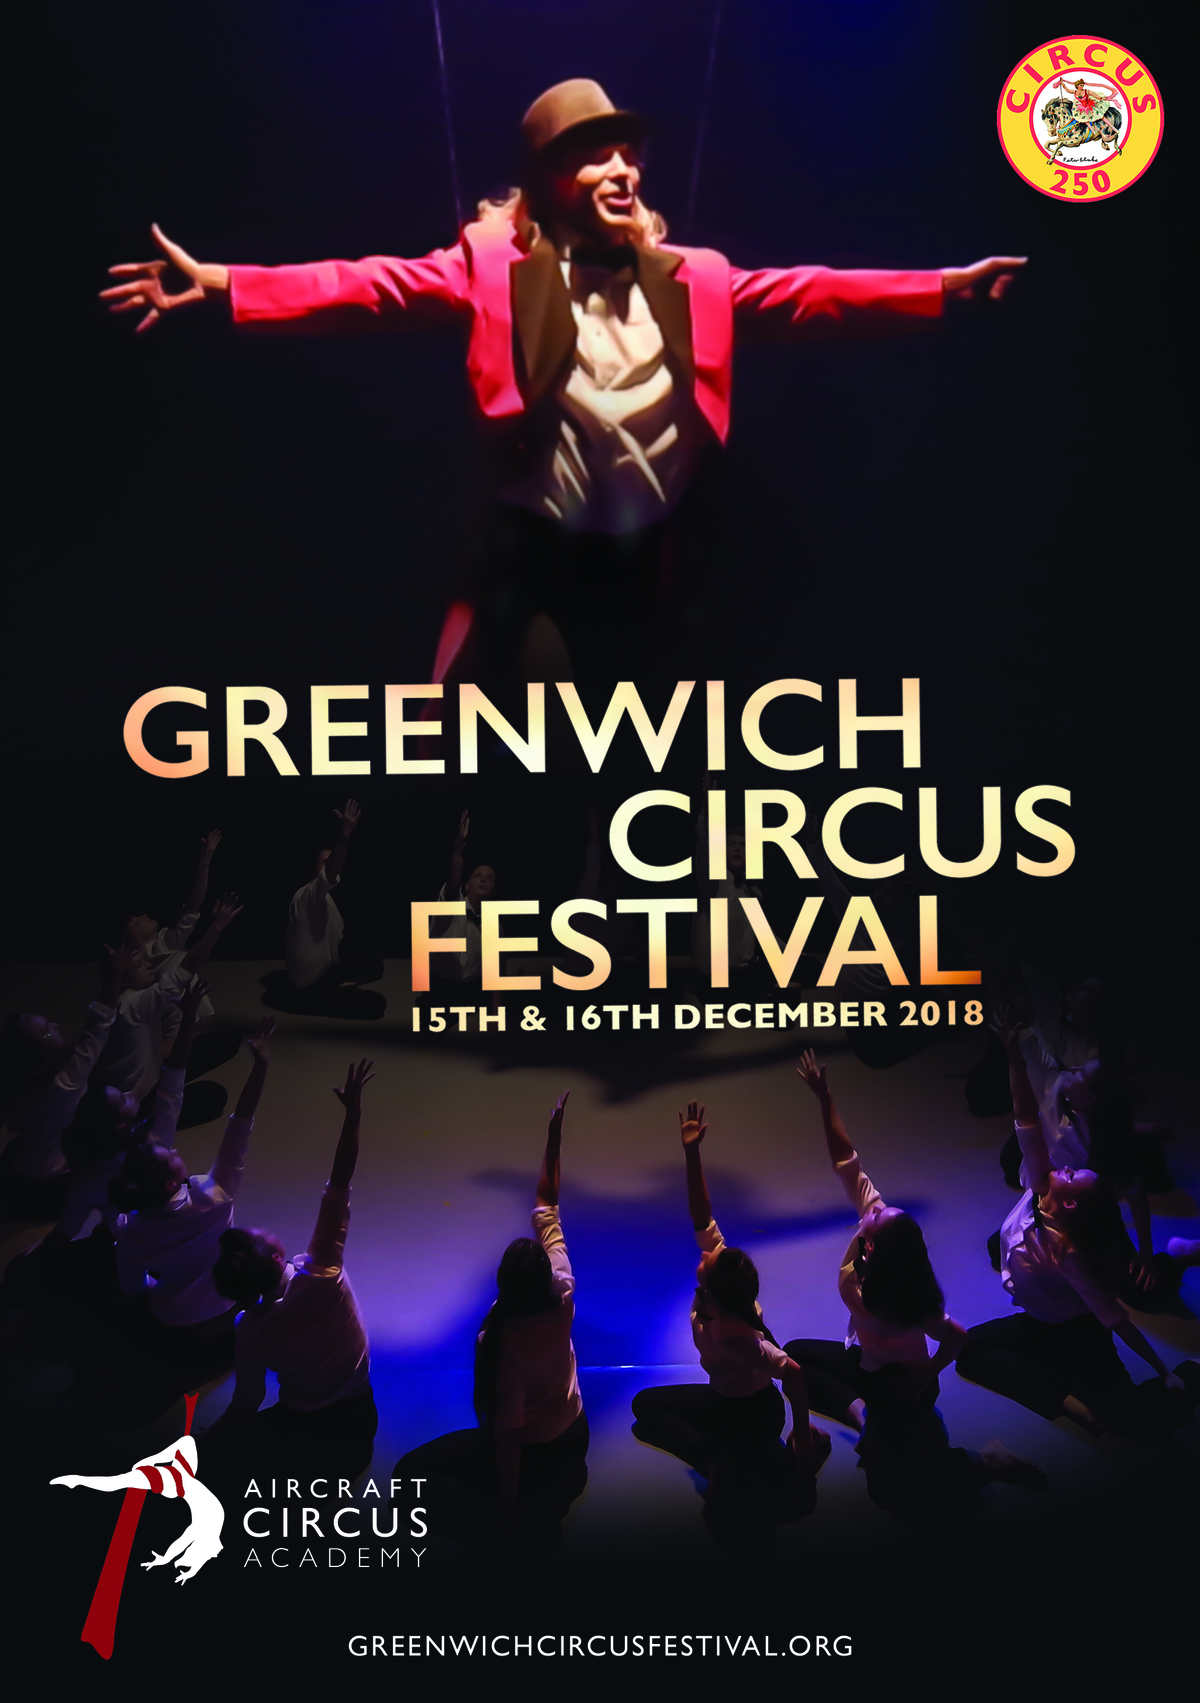 Greenwich Circus Festival 2018 - Circus Events - CircusTalk